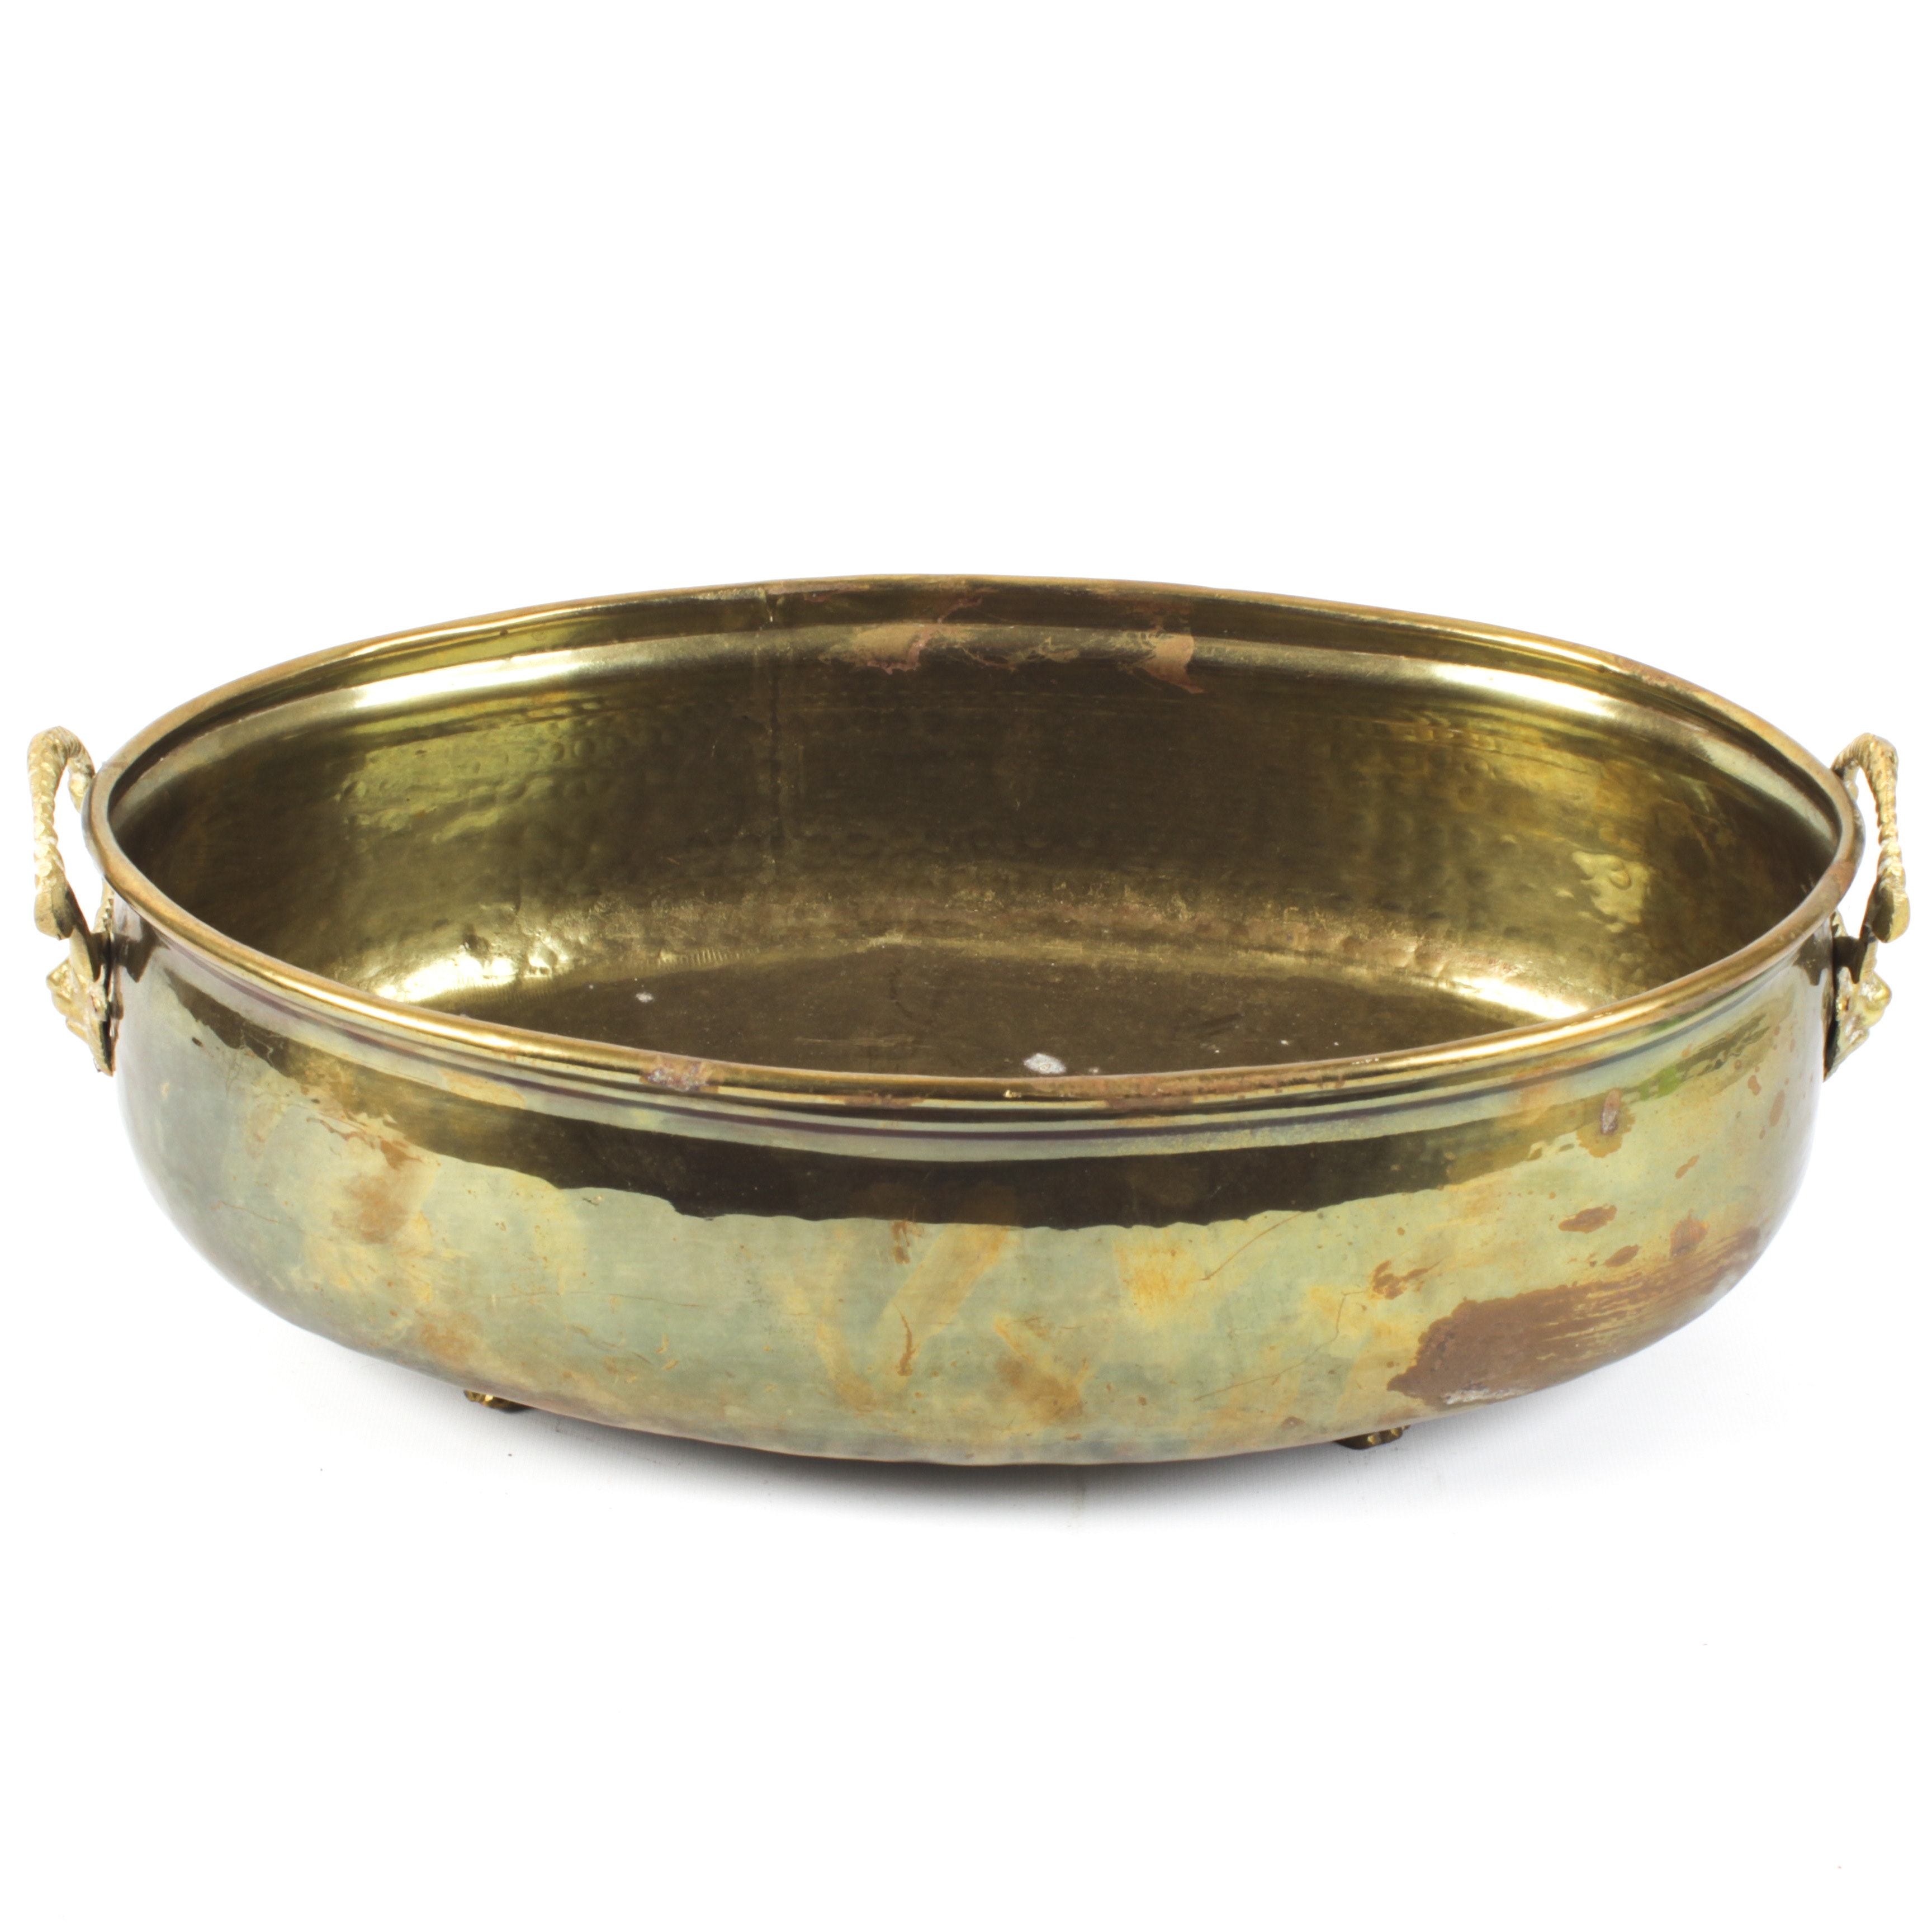 Plannished Plated Brass Footed Planter